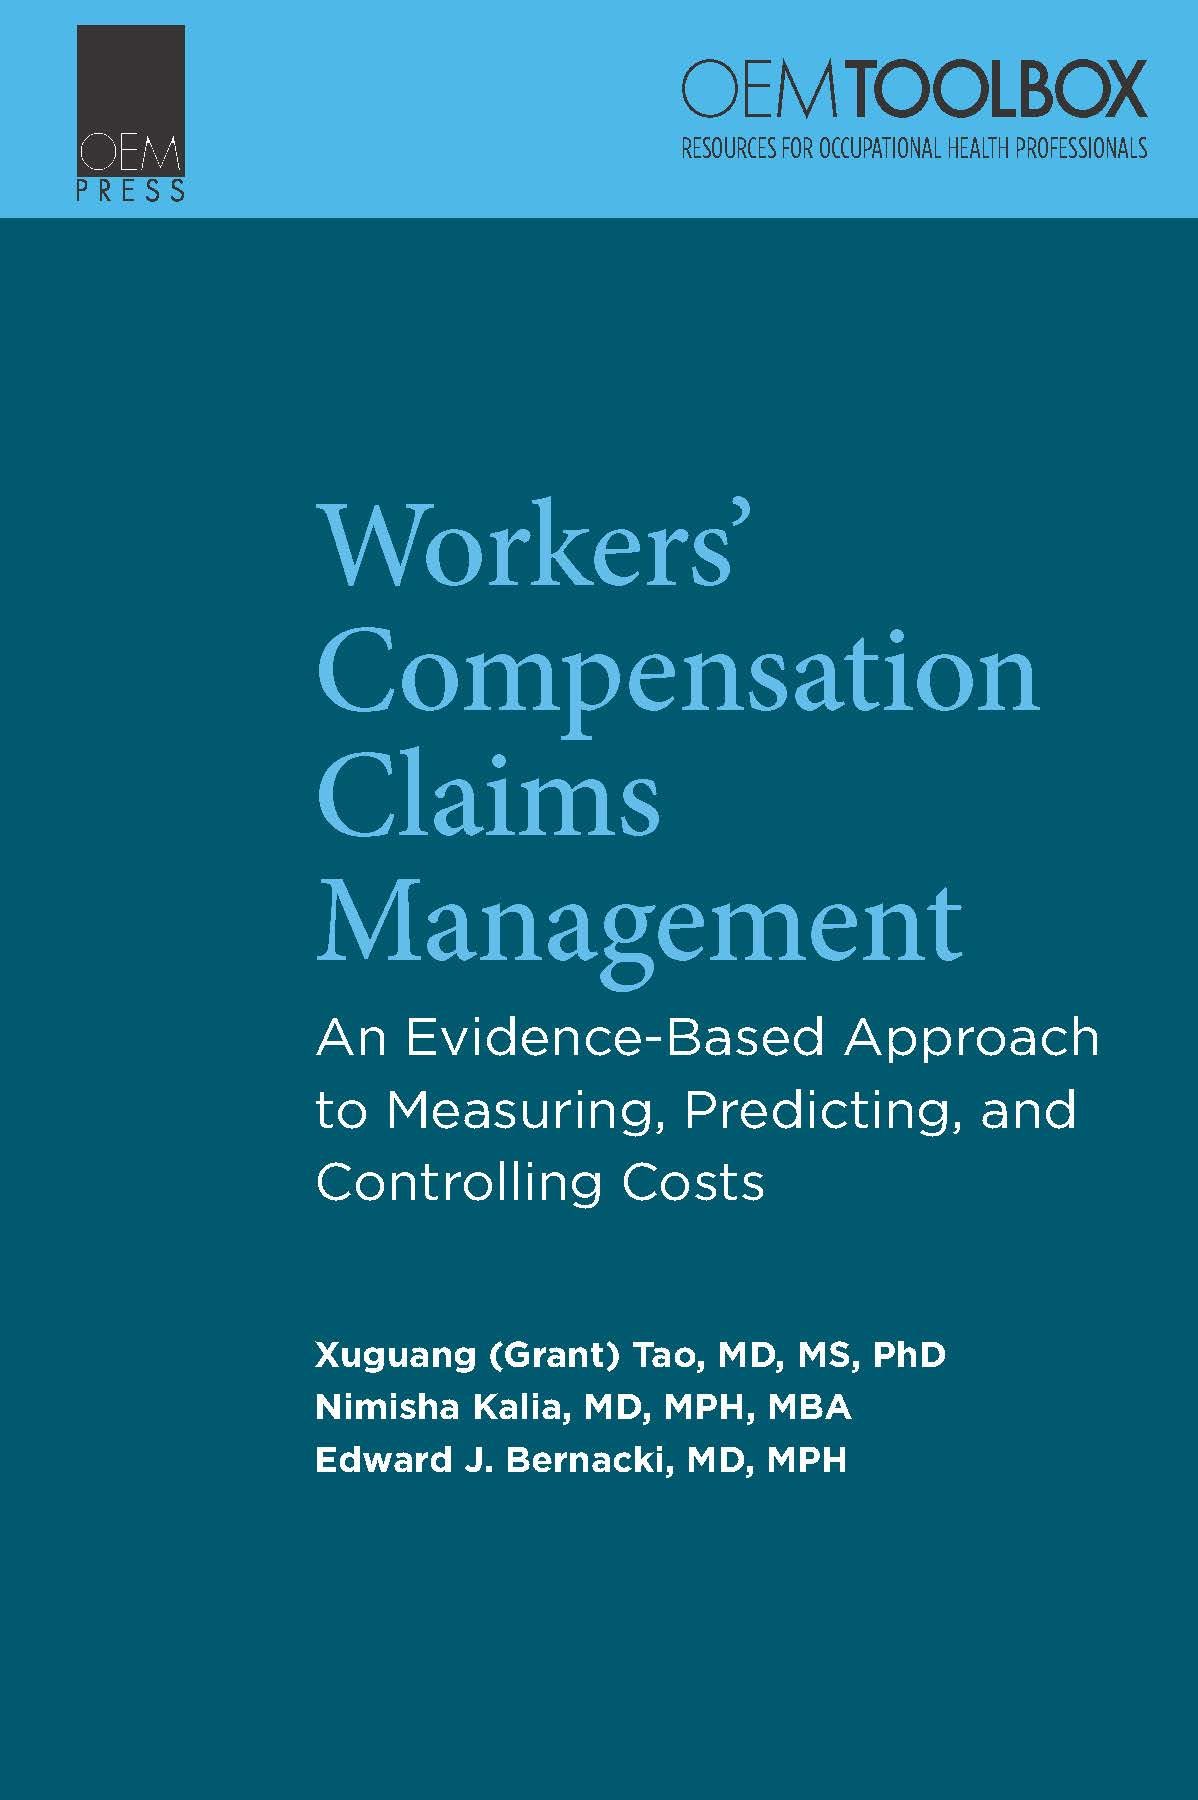 Workers' Compensation Claims Management An Evidence-Based Approach to Measuring, Predicting, and Controlling Costs